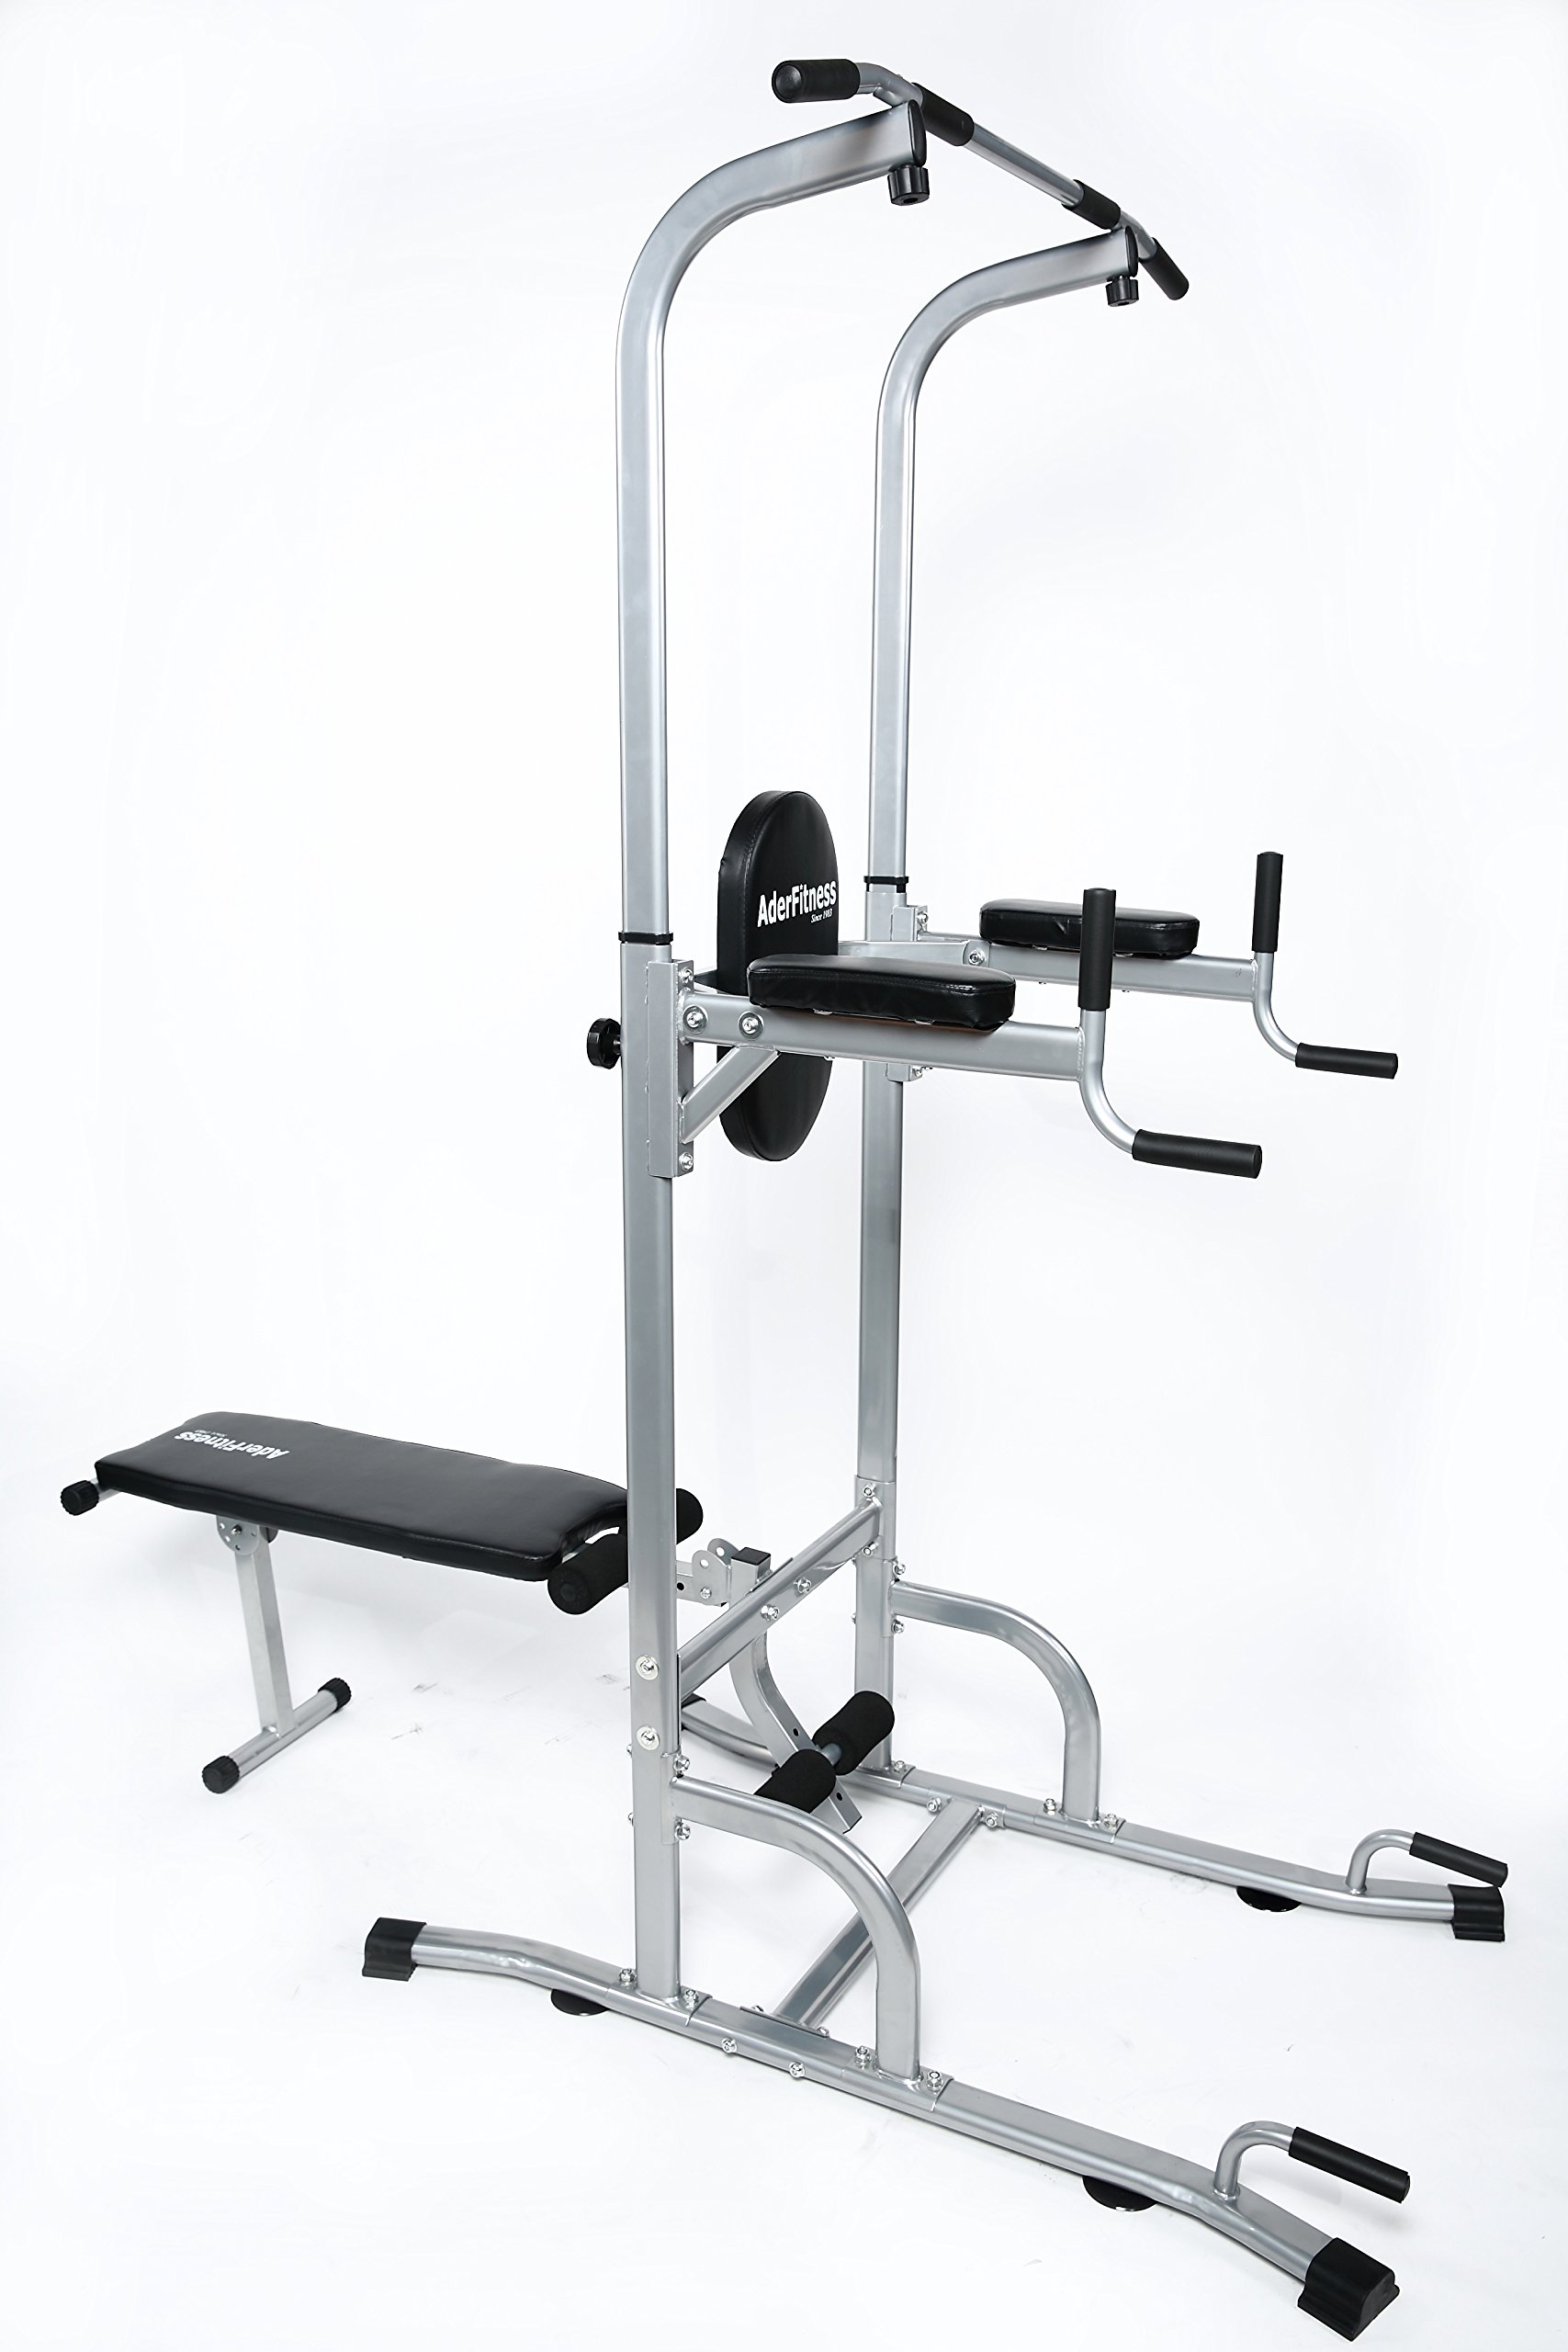 Ader Adjustable Muti-Function VKR Power Tower Chin/Dip Ab Station w/Sit Up Bench for Home Fitness by Ader